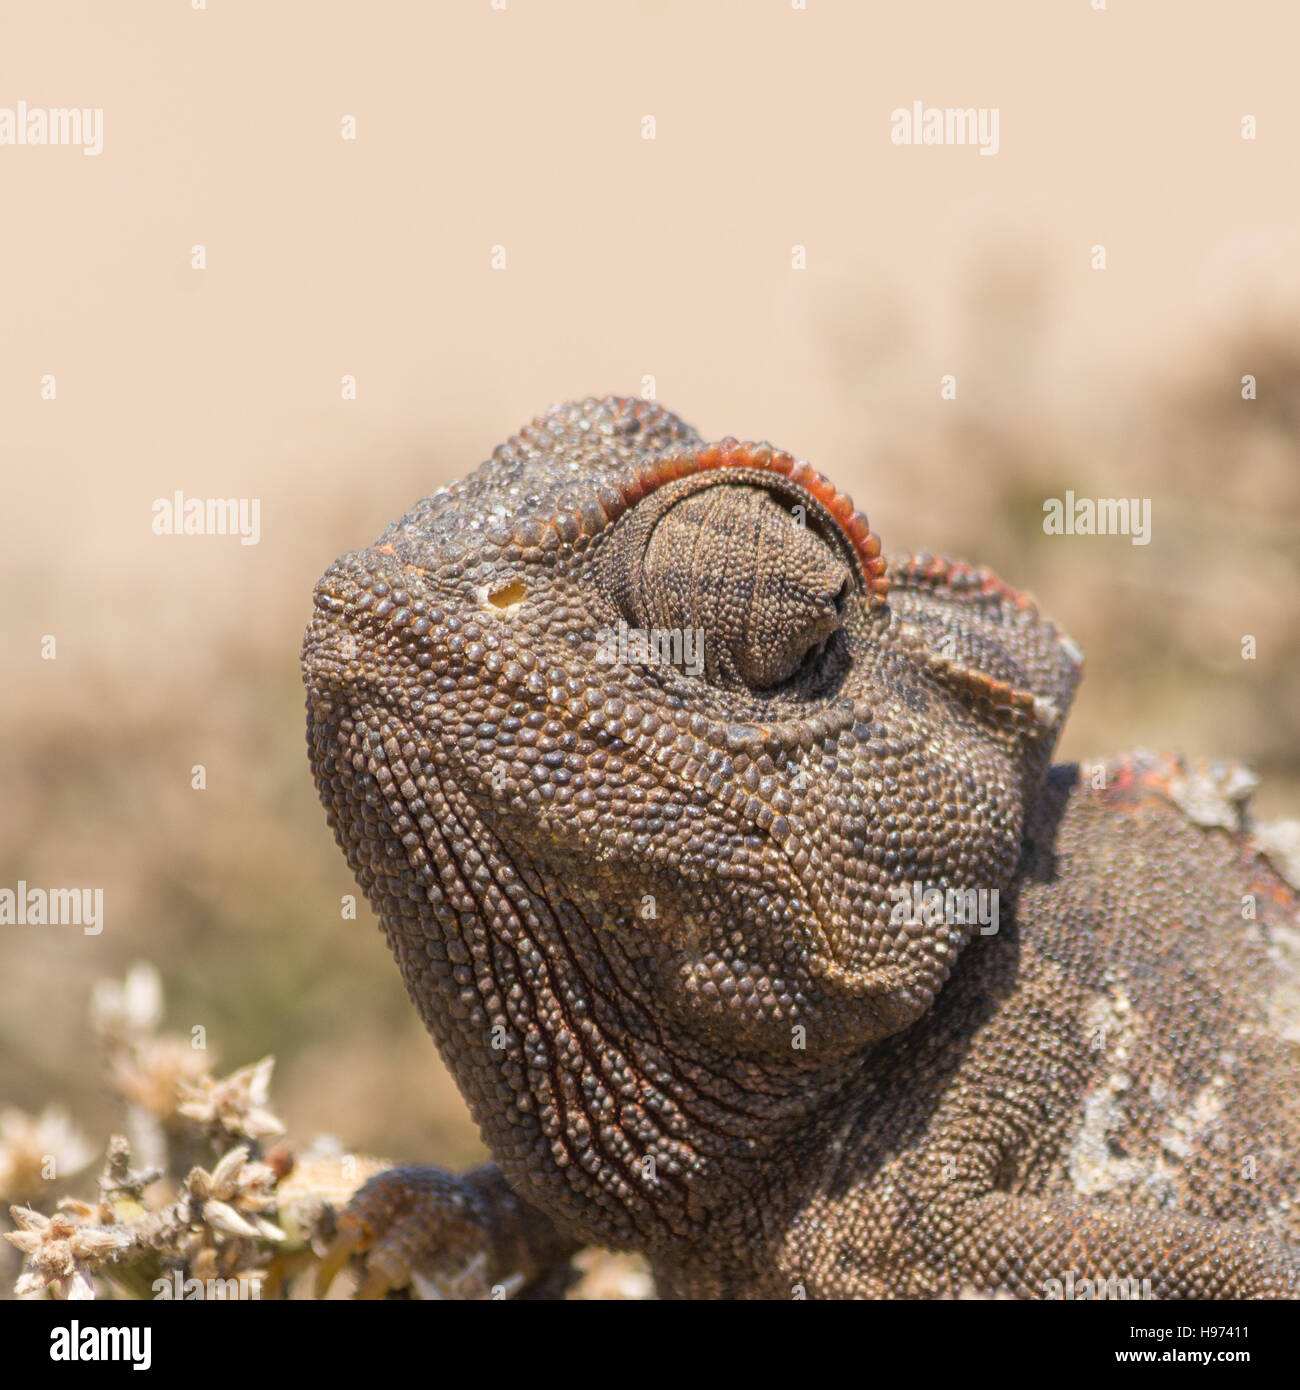 Portrait of a Chameleon, seen in namibia, africa. - Stock Image